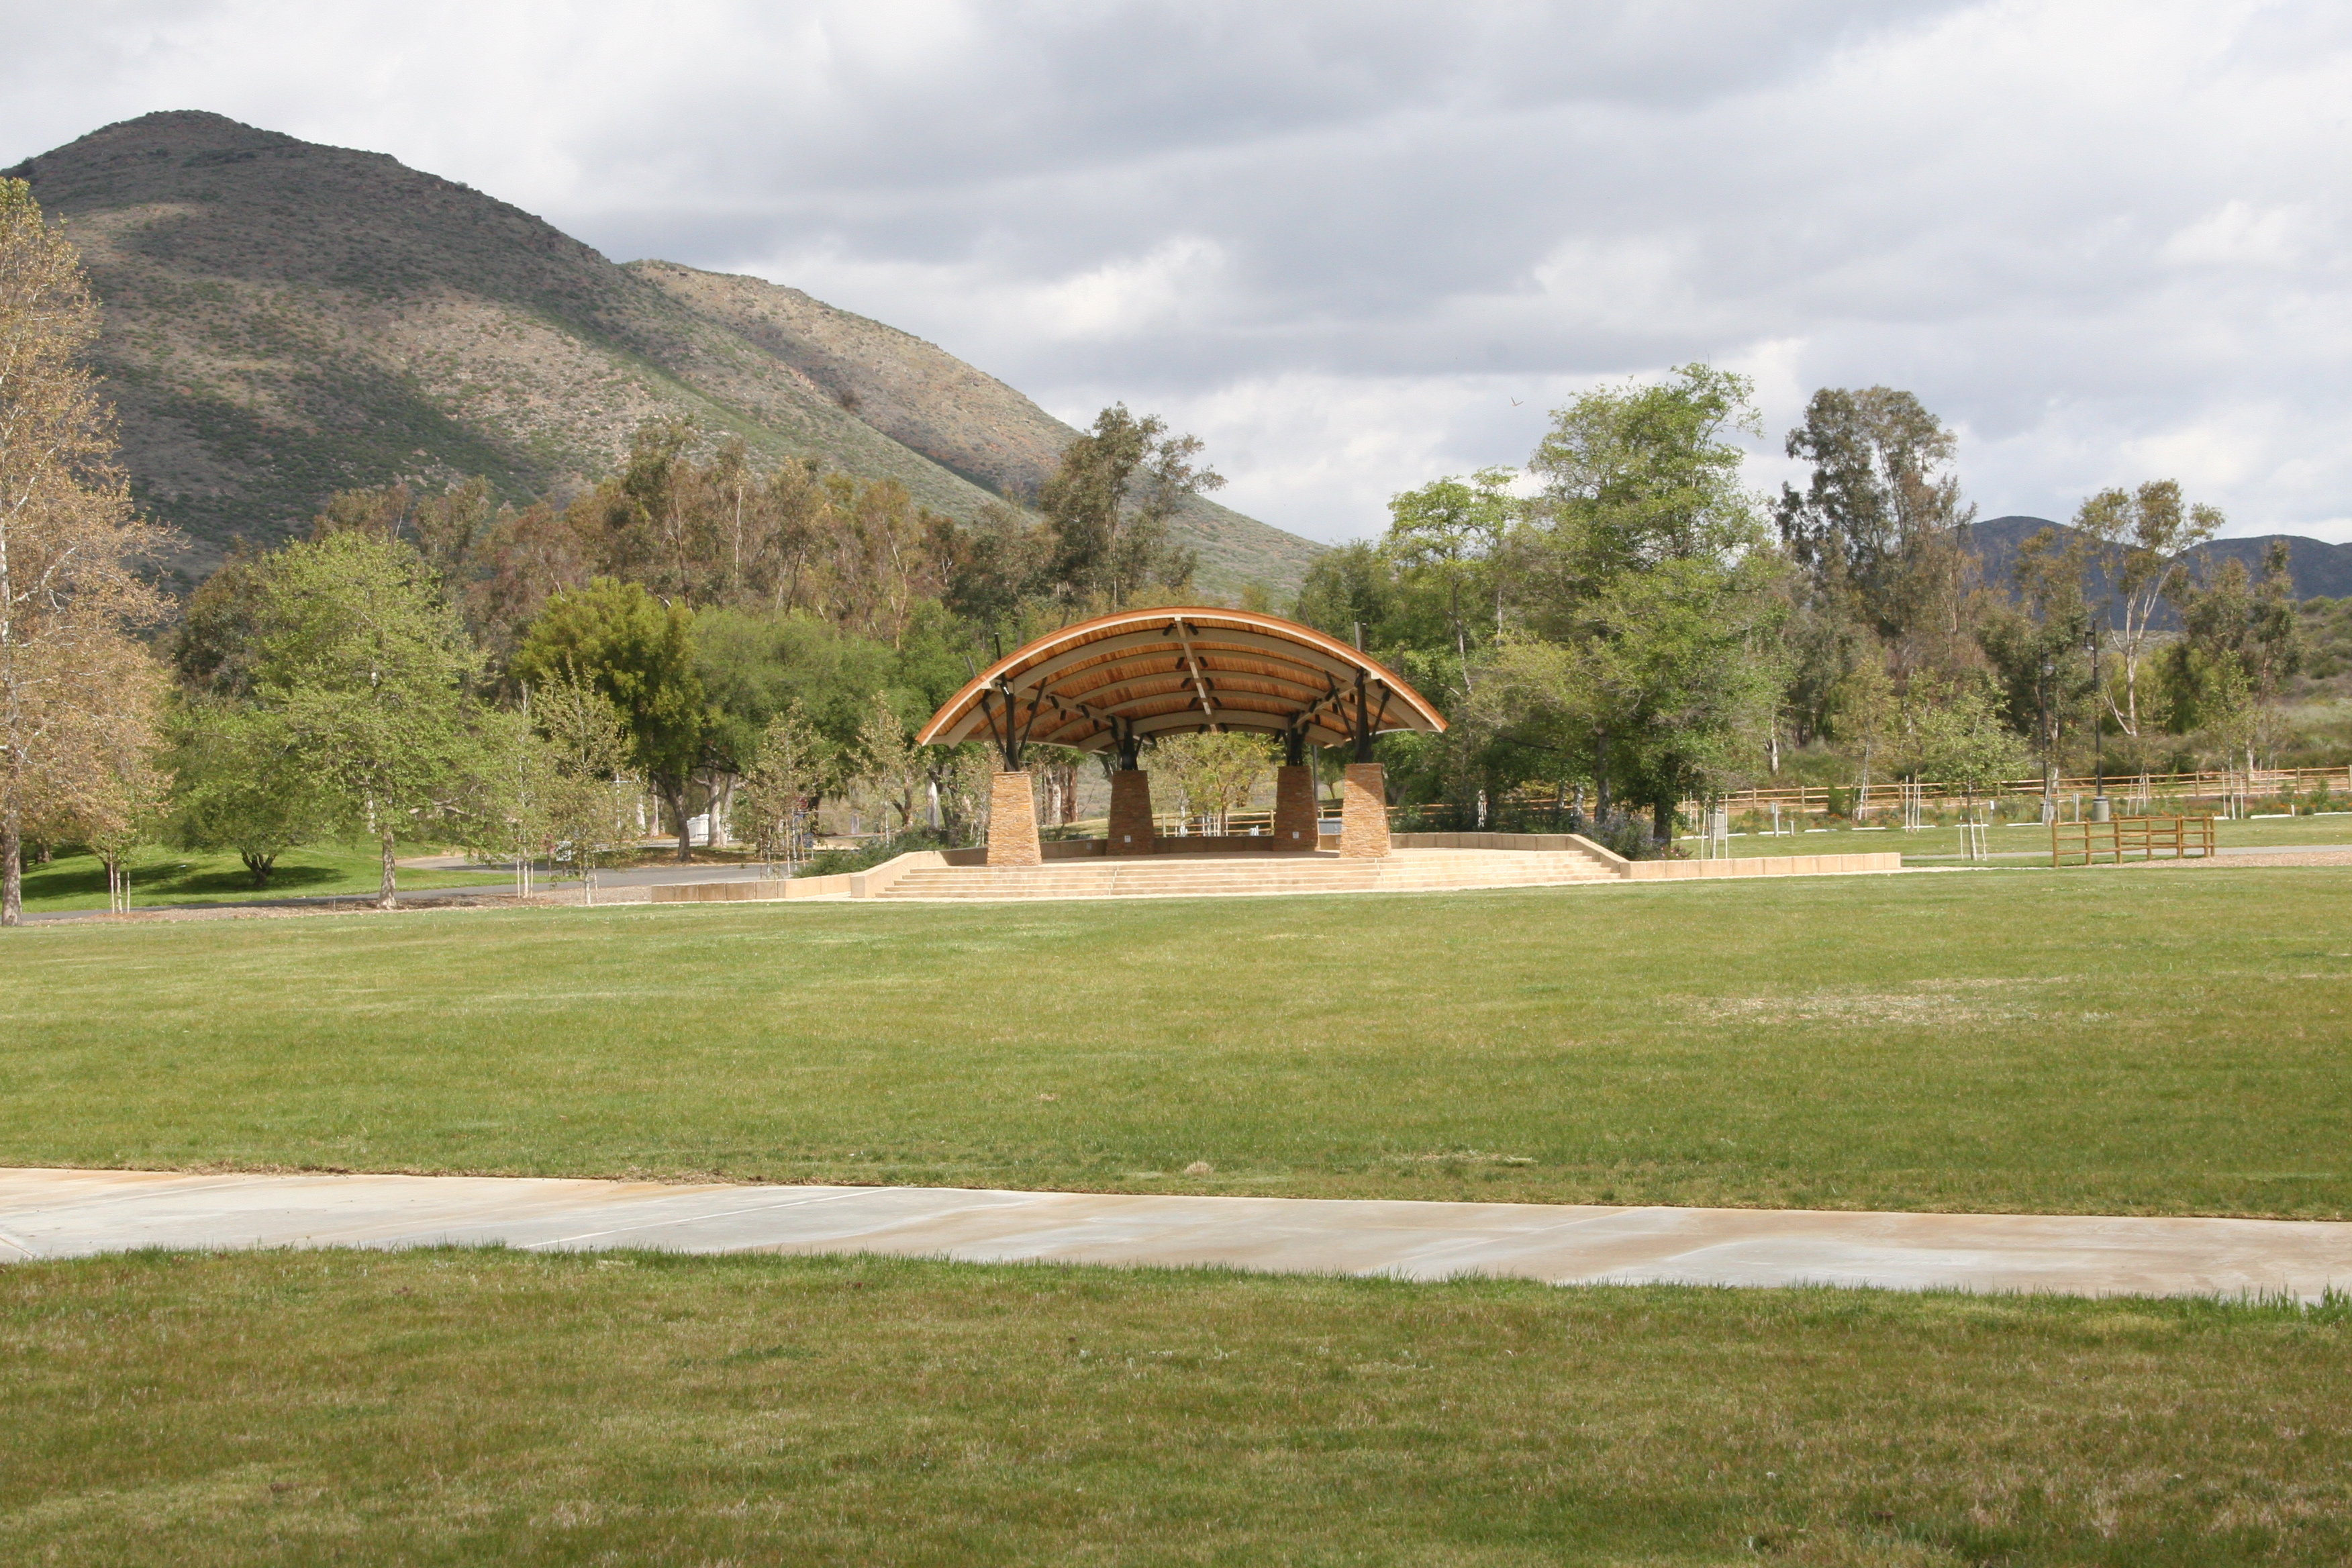 Large shelter at Lake Skinner